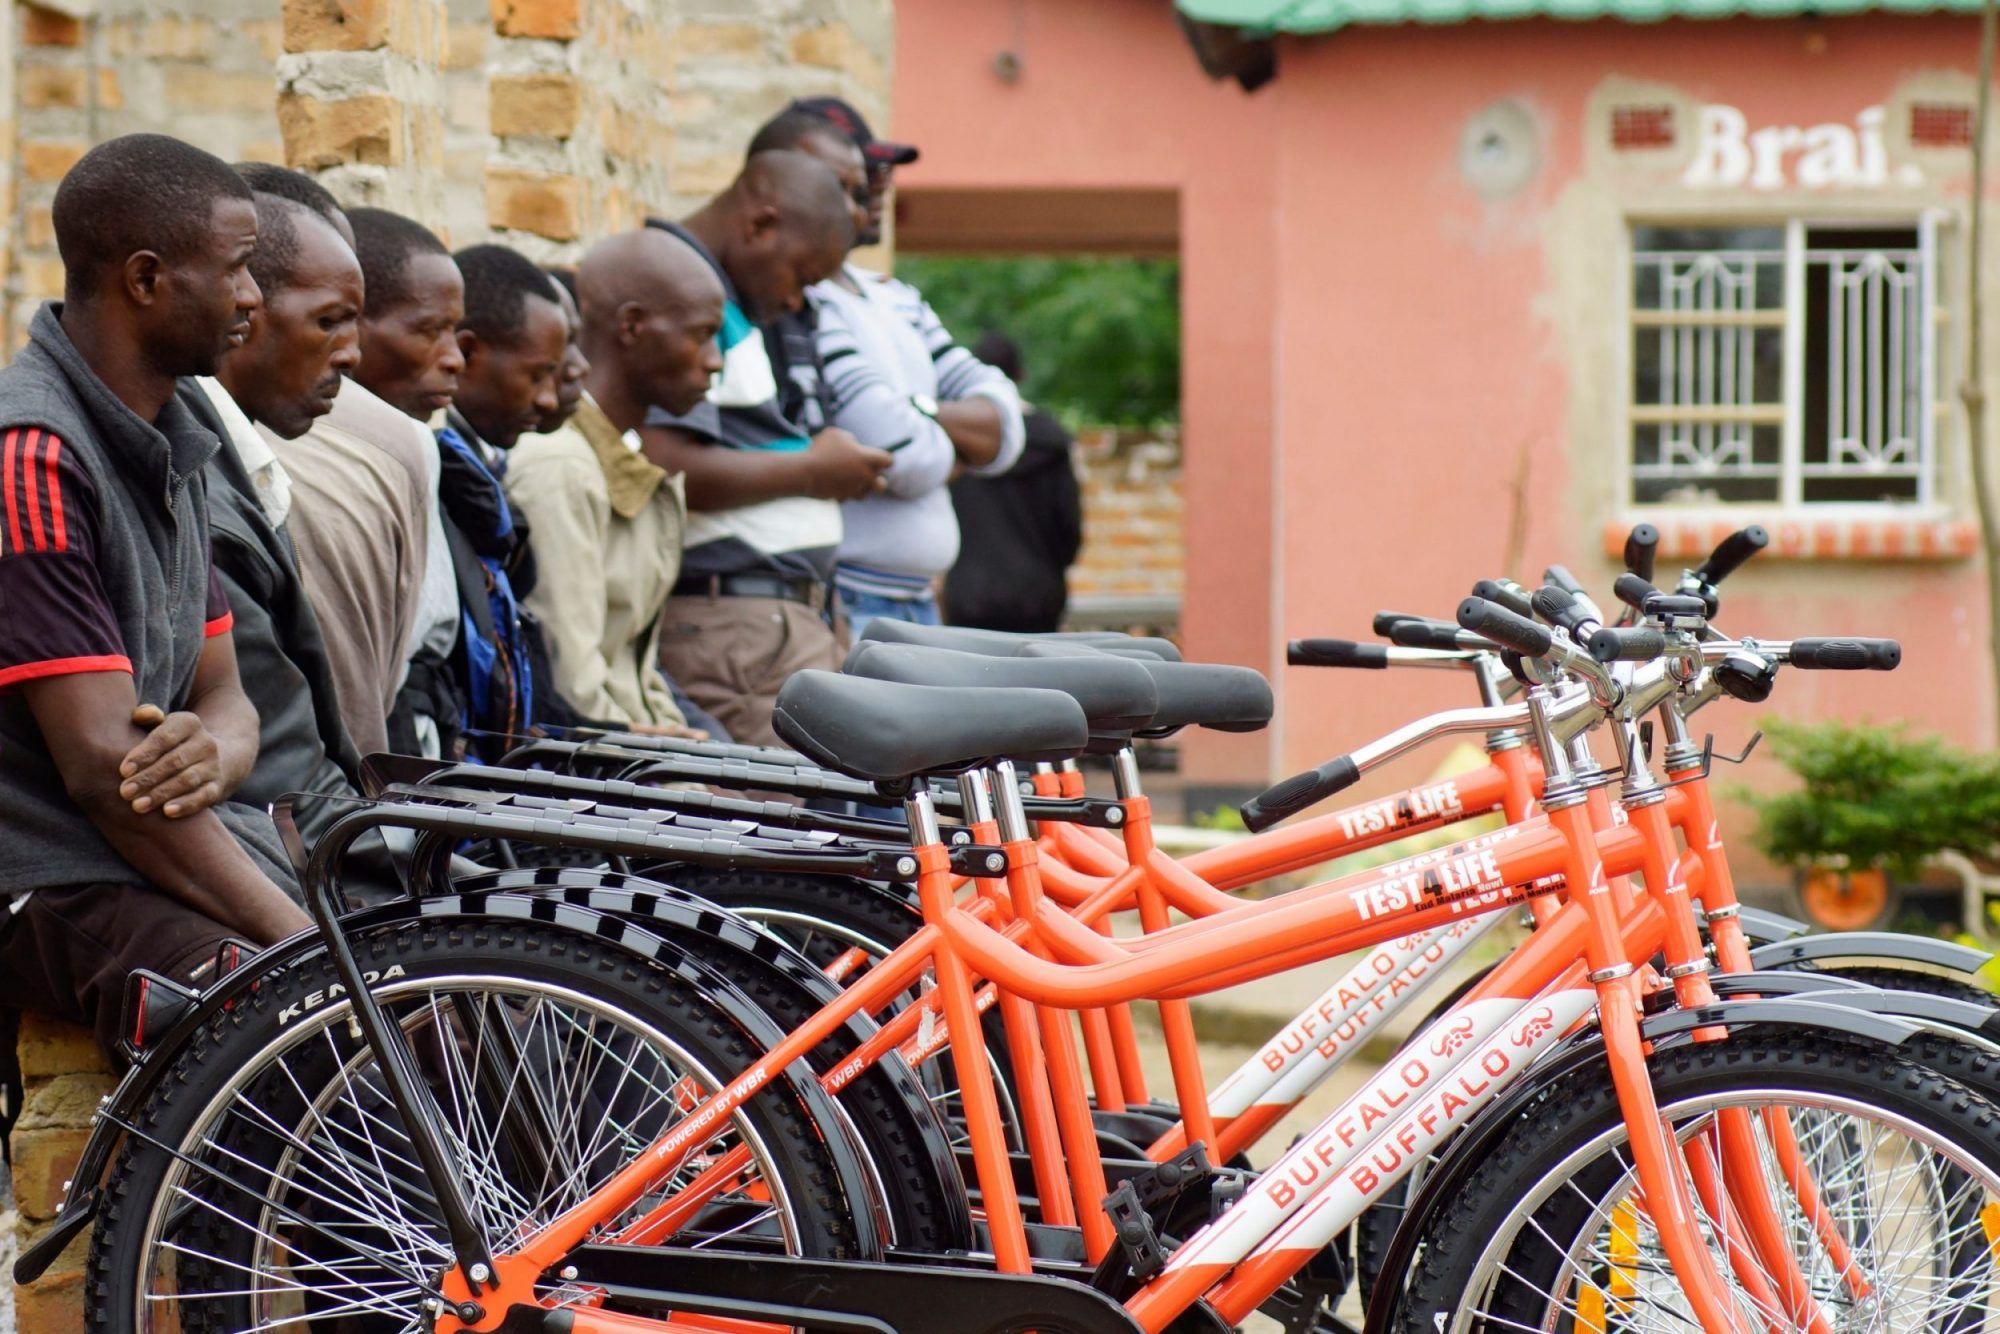 Handover of over 1,000 bicycles for malaria elimination program